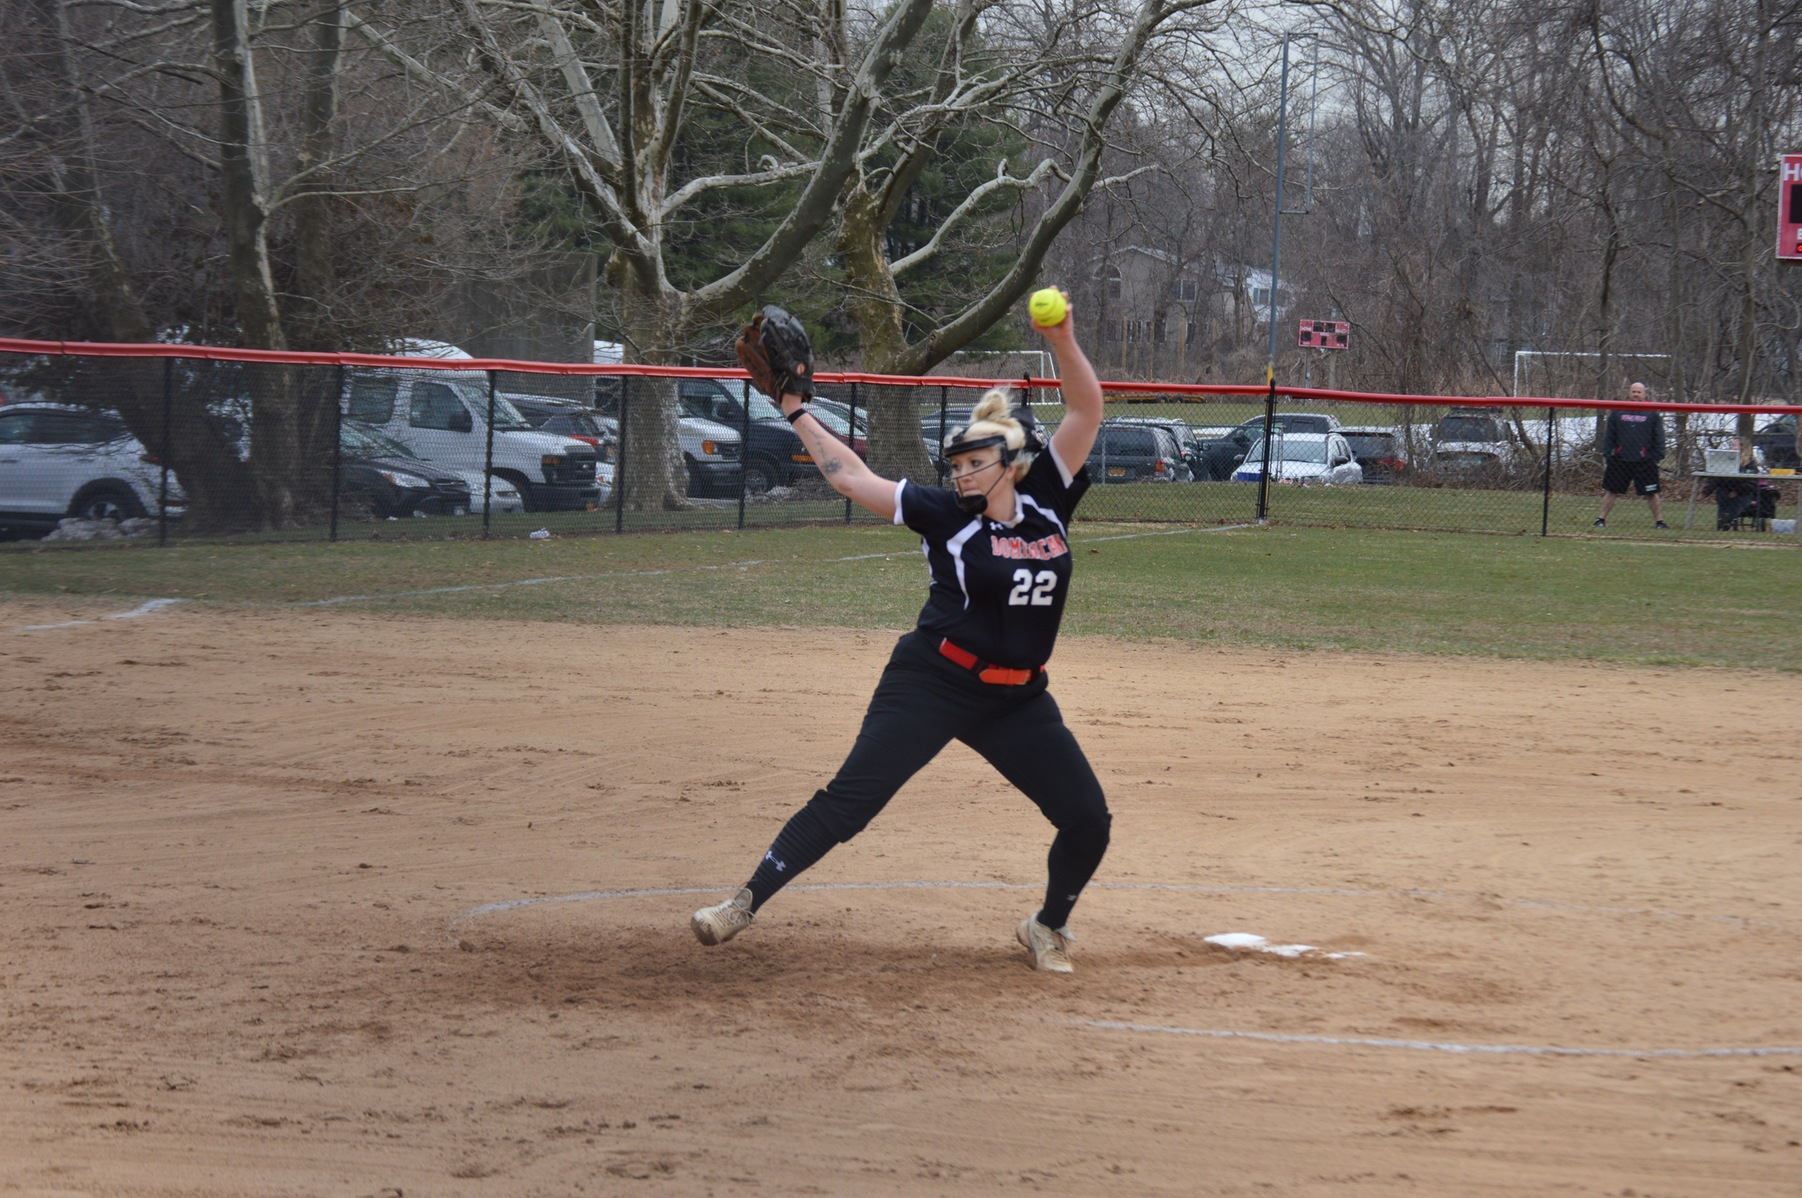 The Lady Chargers swept a CACC double-header over the visiting Warriors of Nyack College in games played this afternoon.